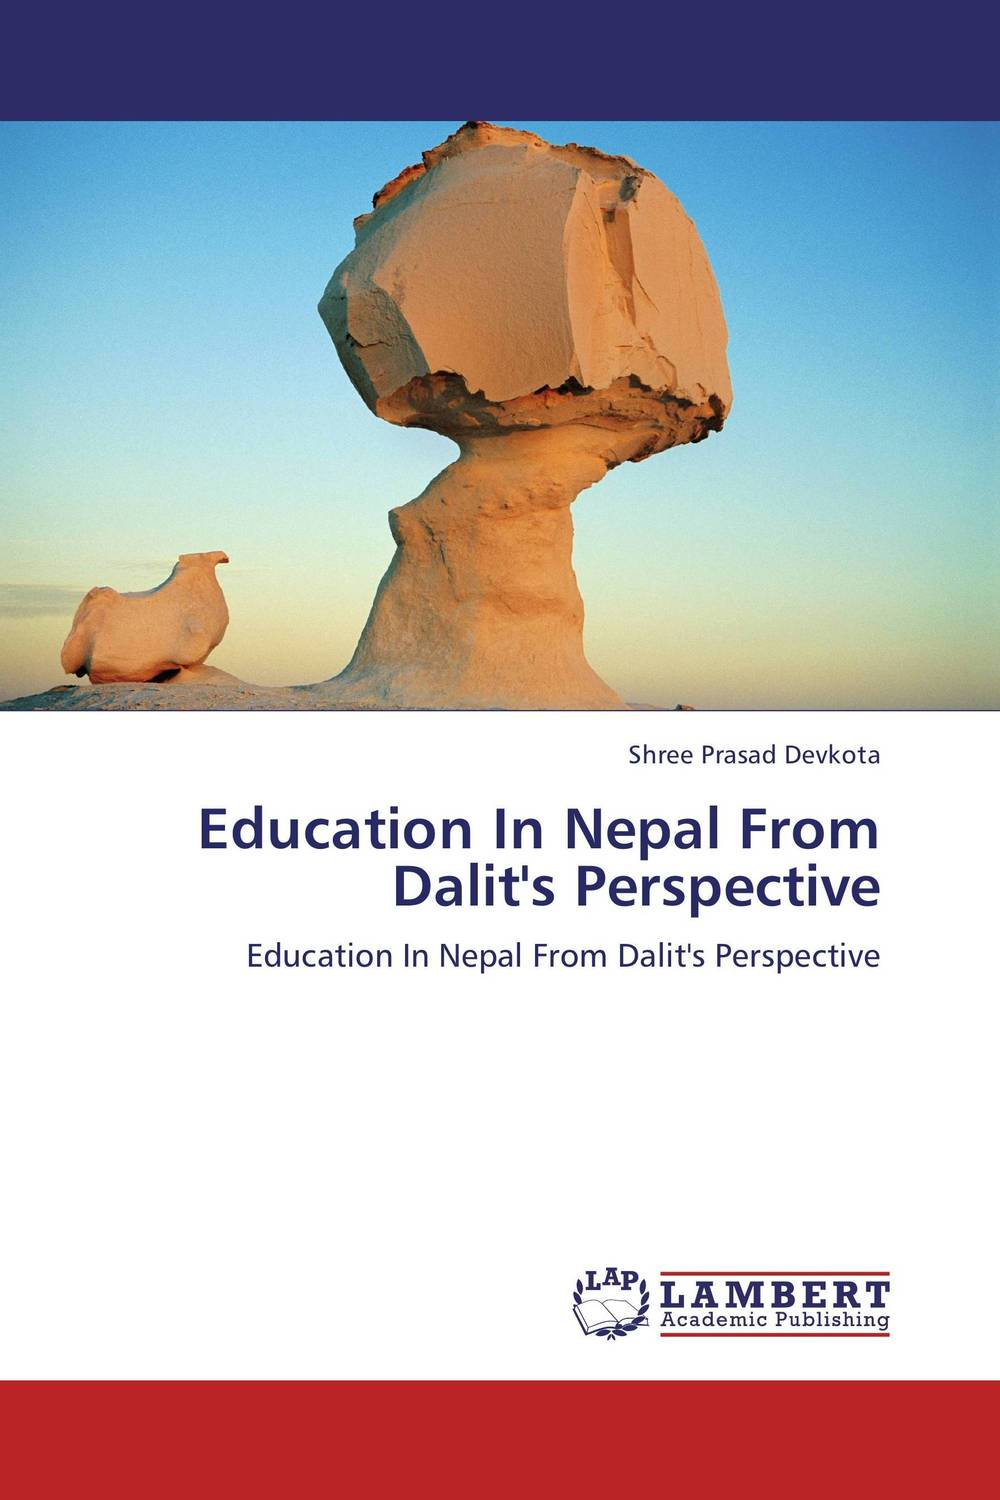 Education In Nepal From Dalit's Perspective сысоев п сысоева л issues in us culture and society амер культура и общество